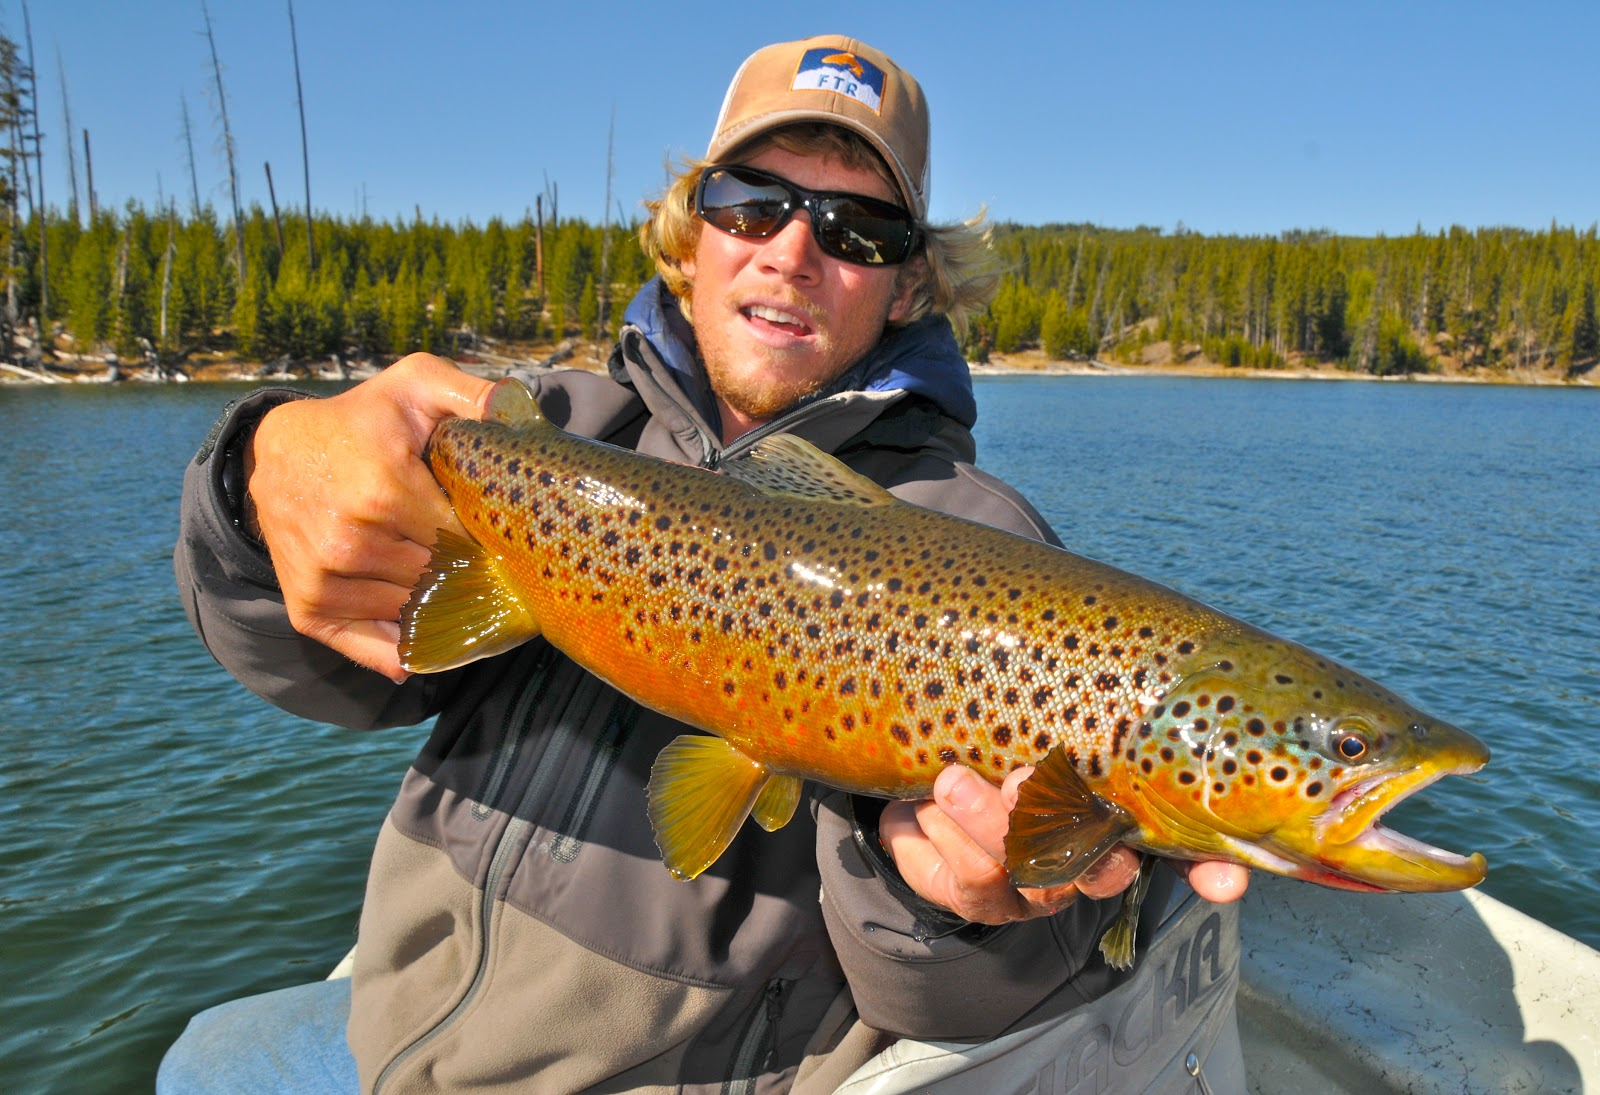 Jackson hole guide report october 16 2012 for Jackson lake fishing